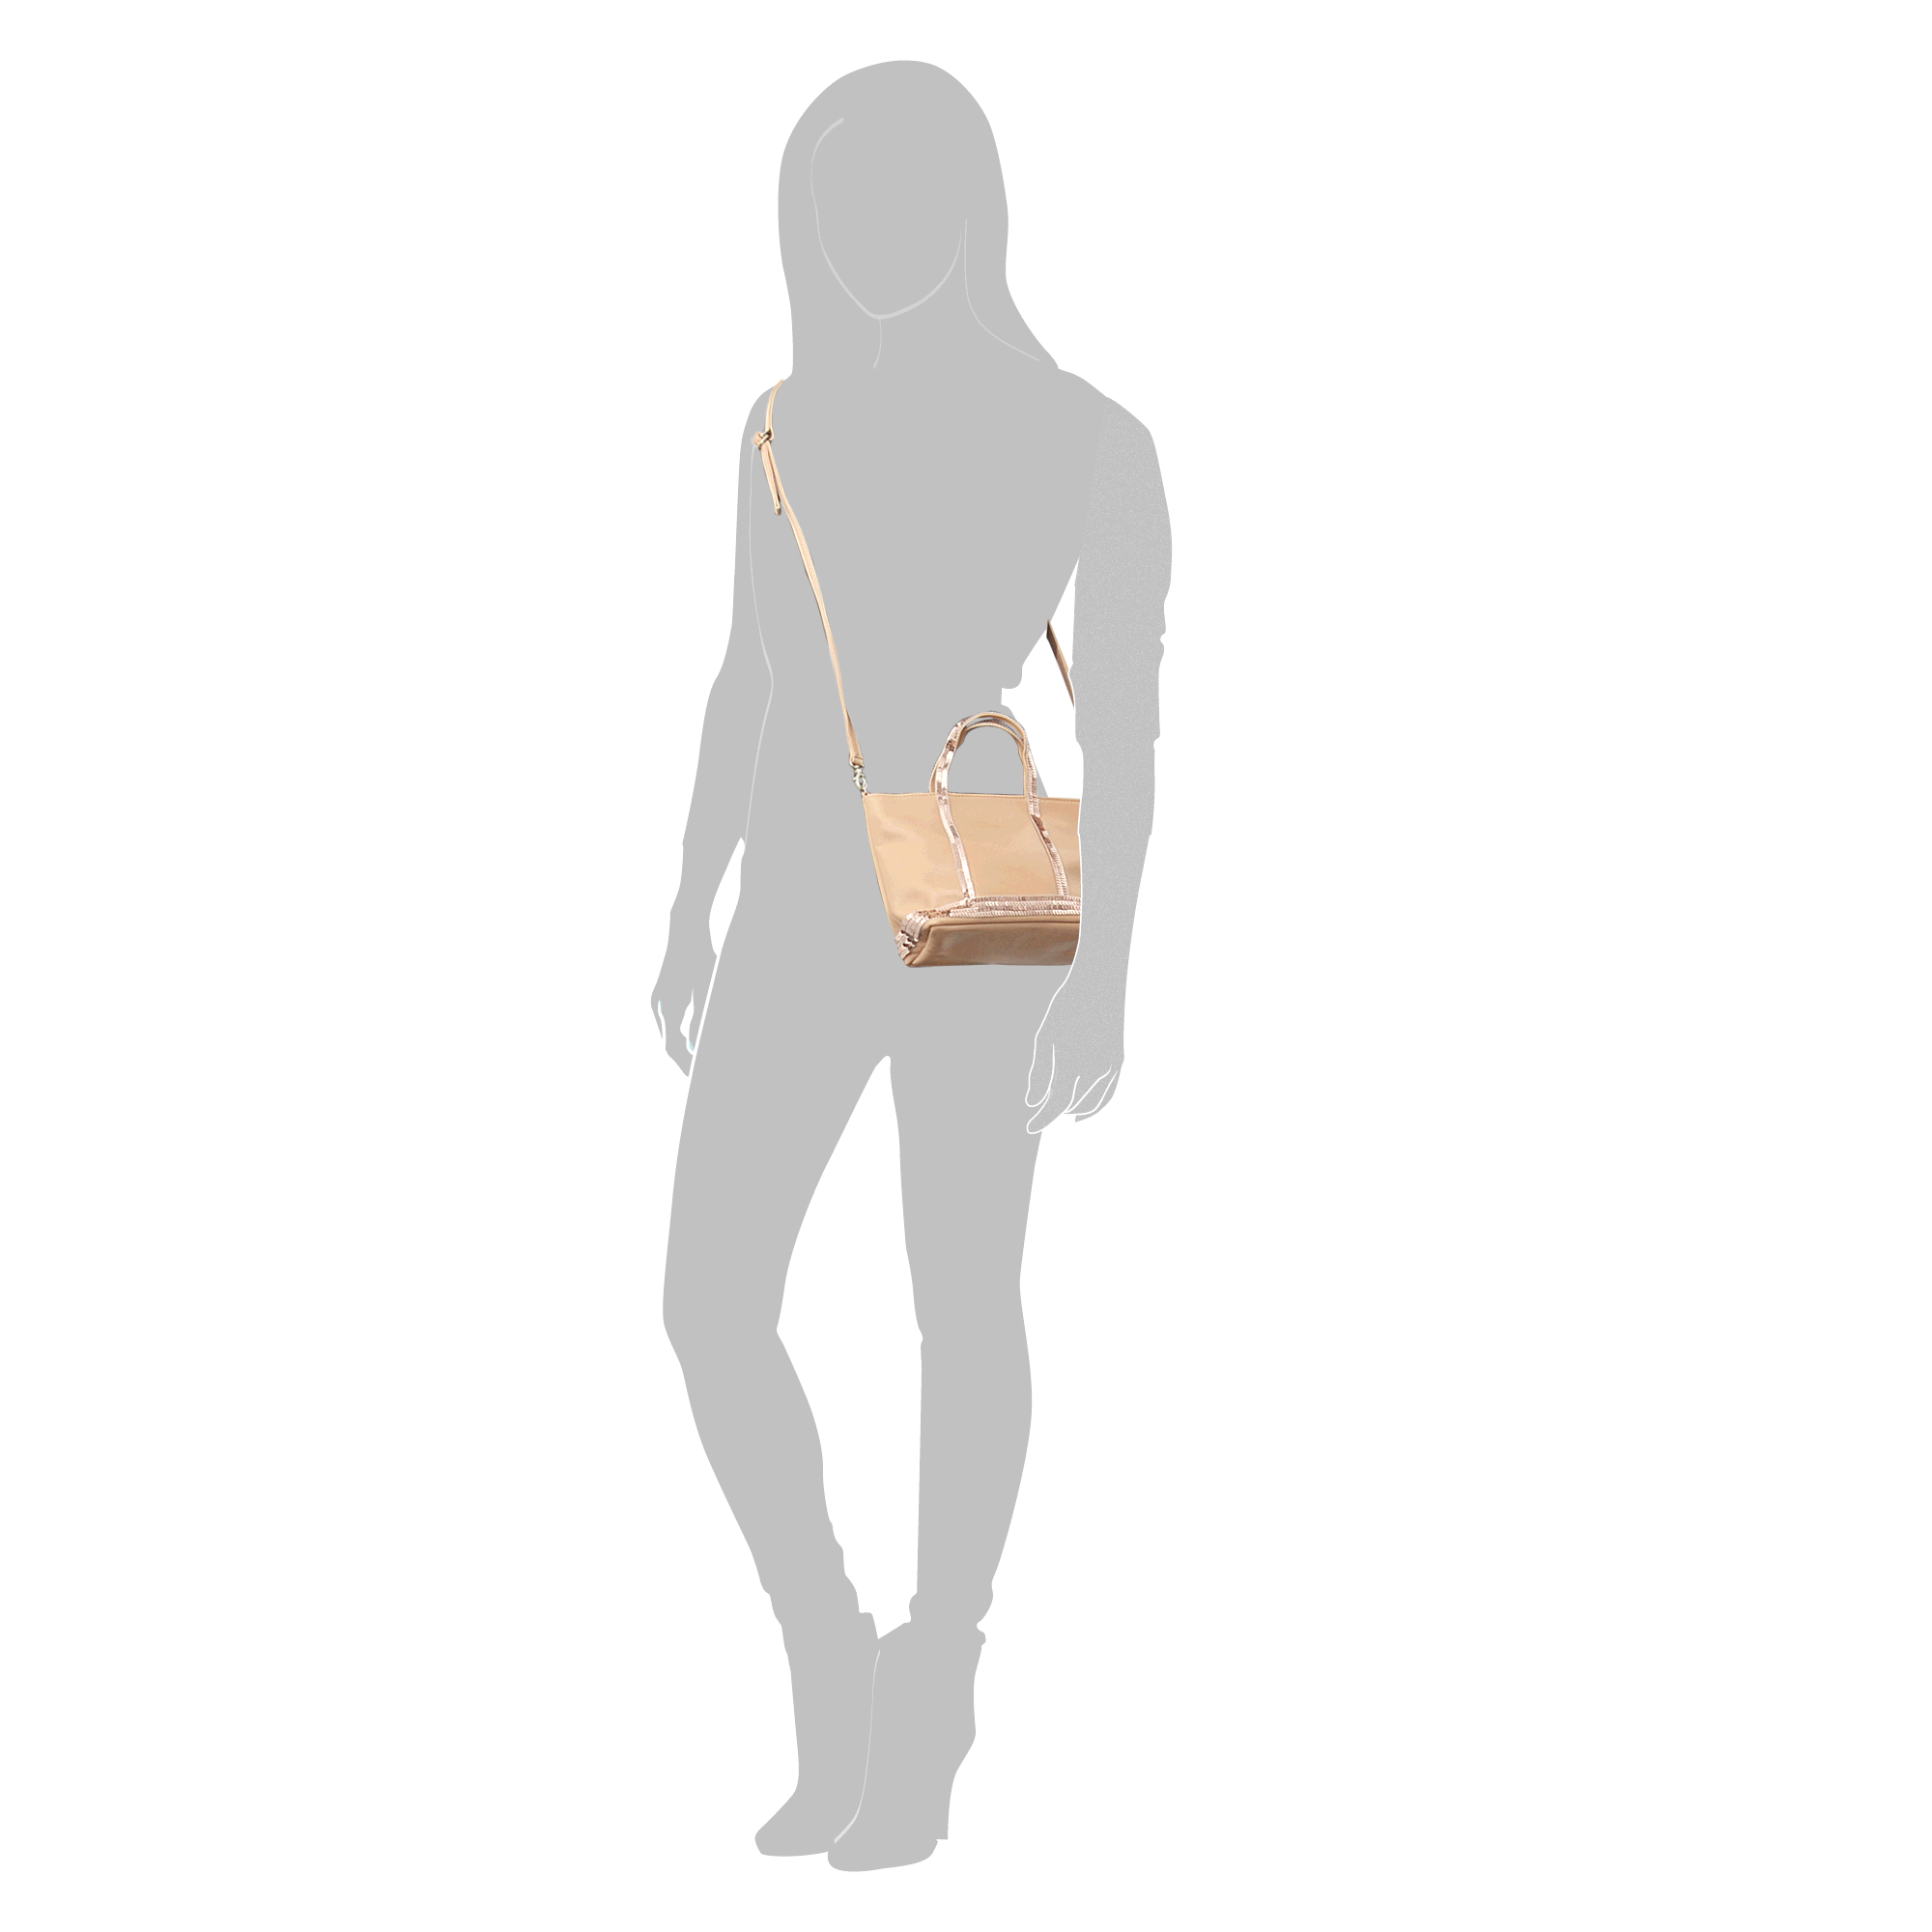 9cb653c961 Vanessa Bruno Sequins And Leather Baby Tote in Natural - Lyst